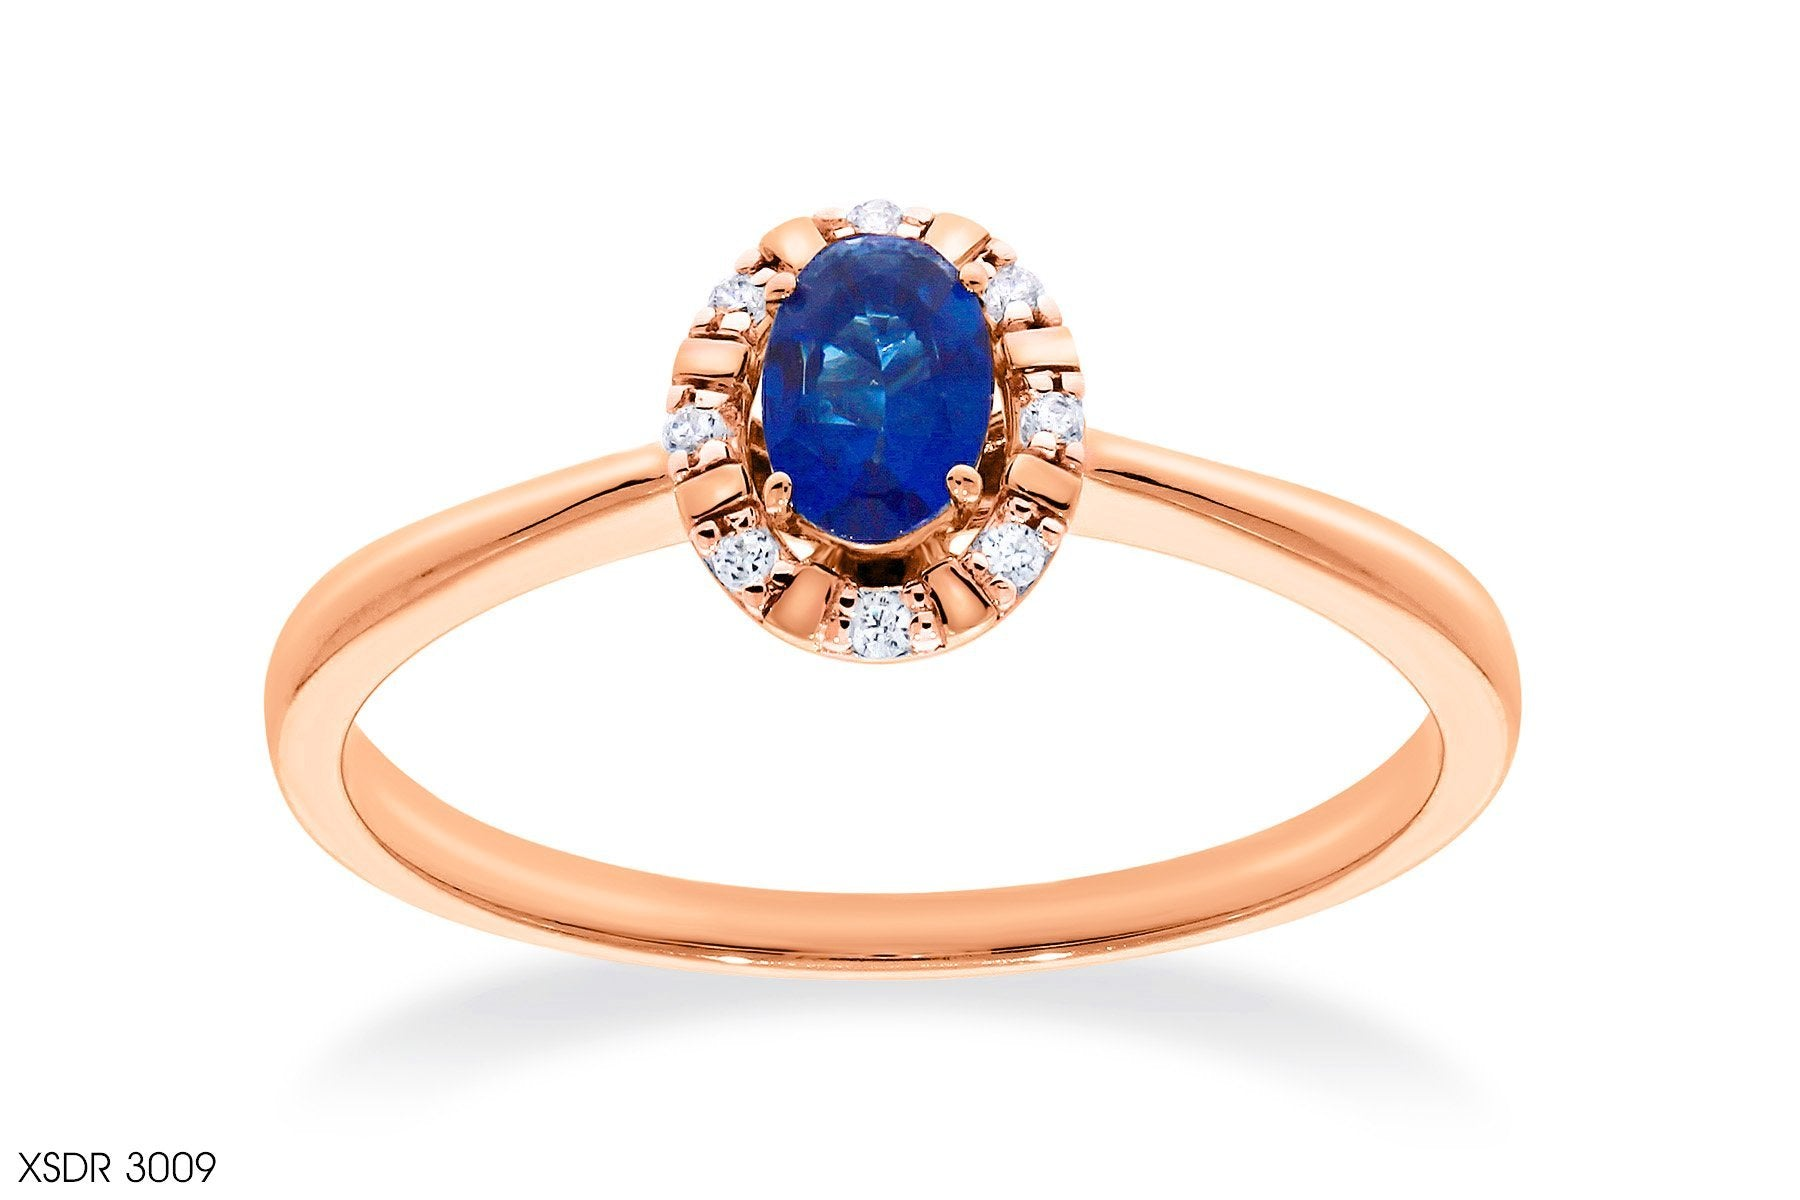 Tapered Shank Oval Blue Sapphire Diamond Ring